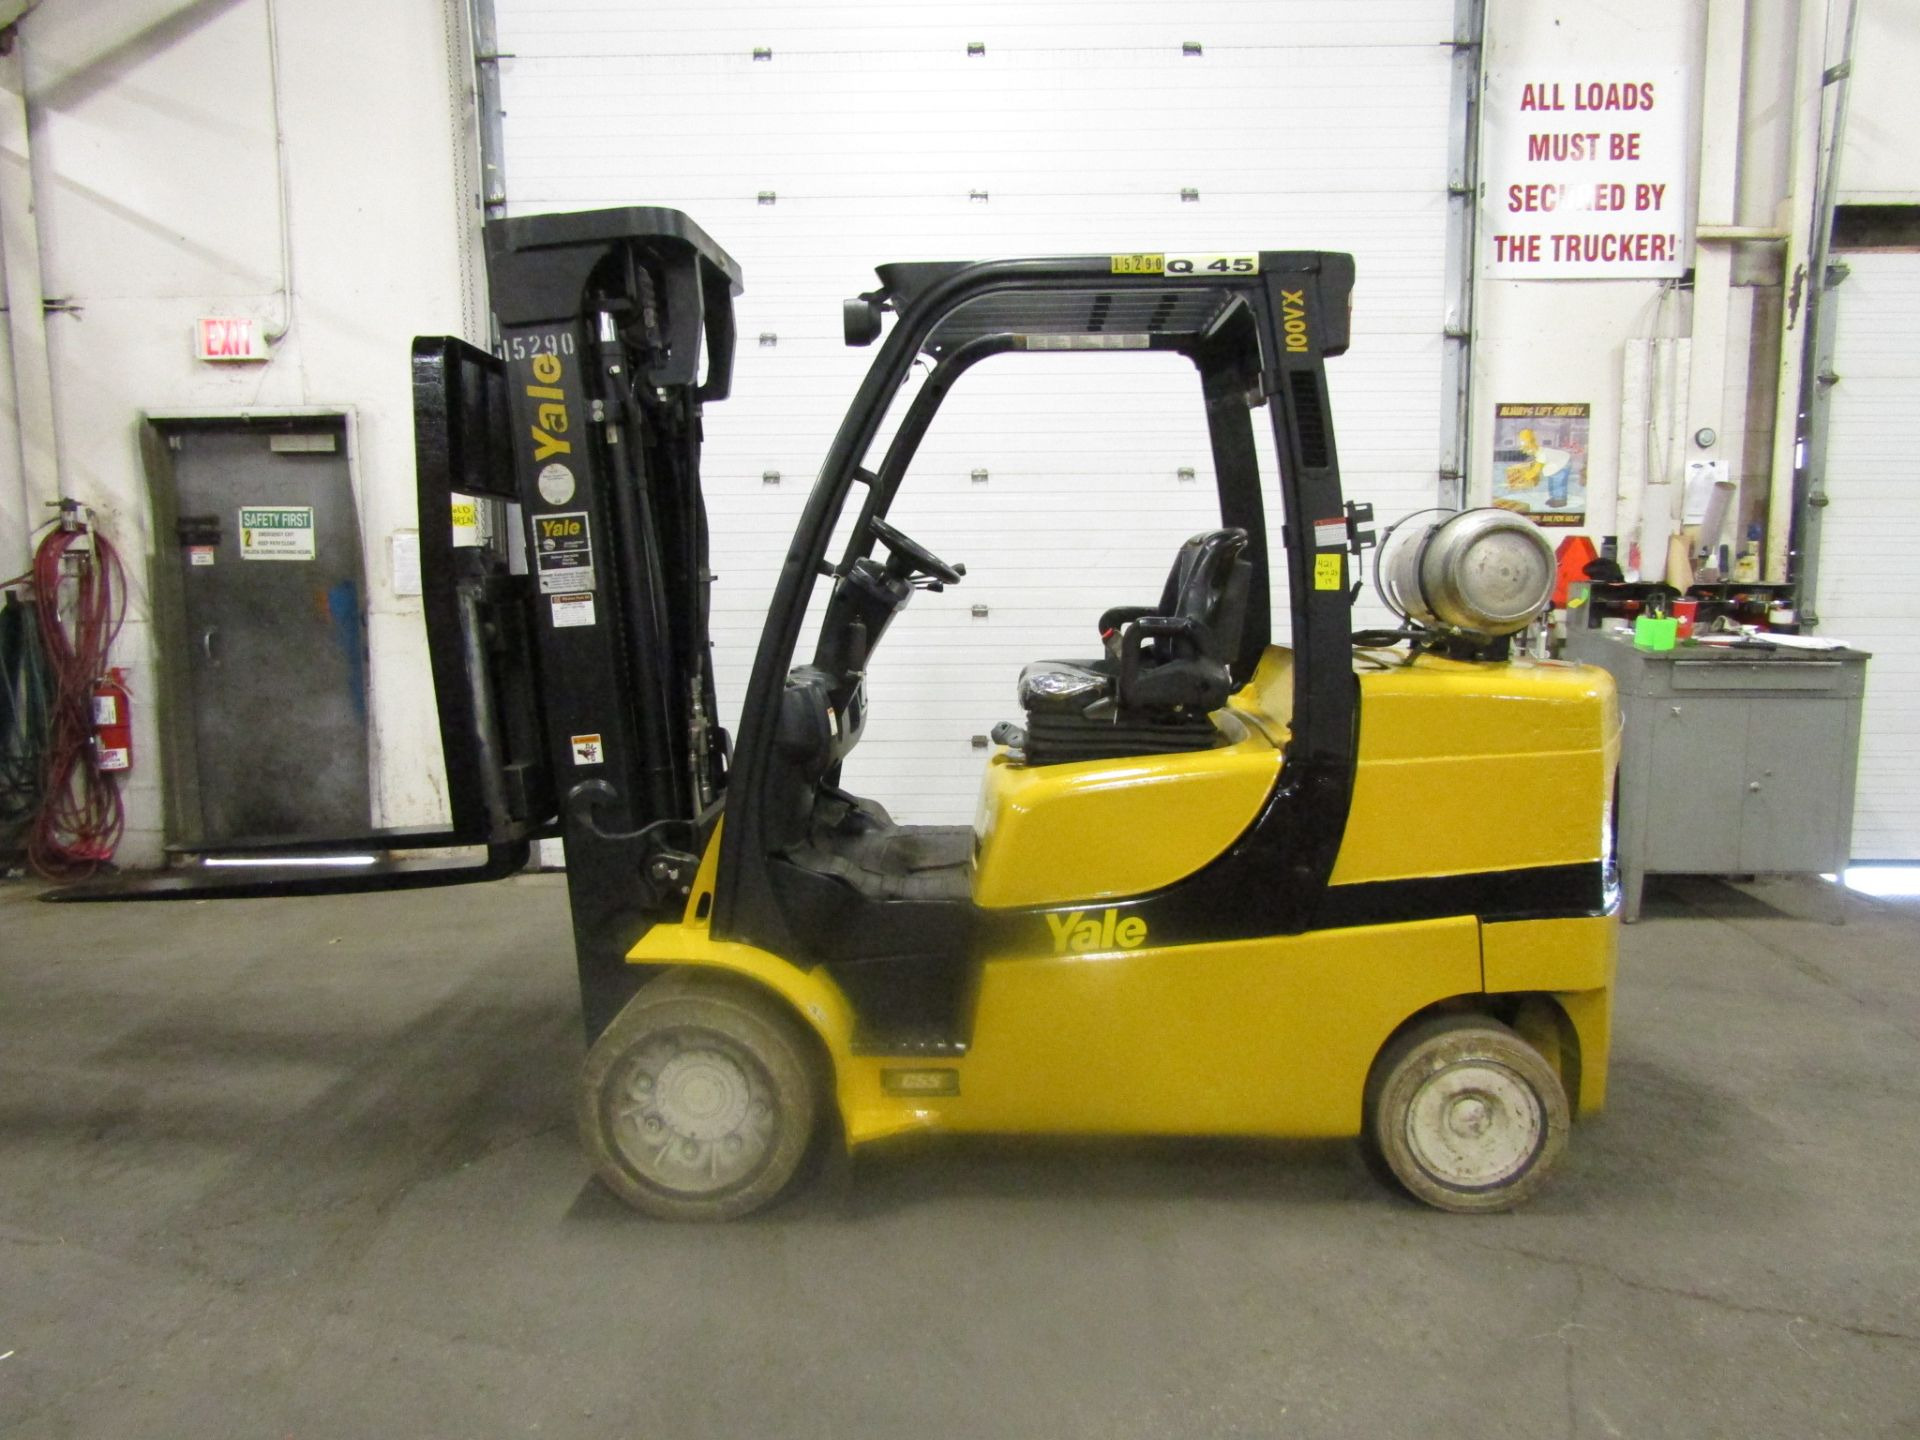 Lot 164 - 2012 Yale 10000lbs Capacity Forklift with 3-stage mast and sideshift & non-marking tires - LPG (